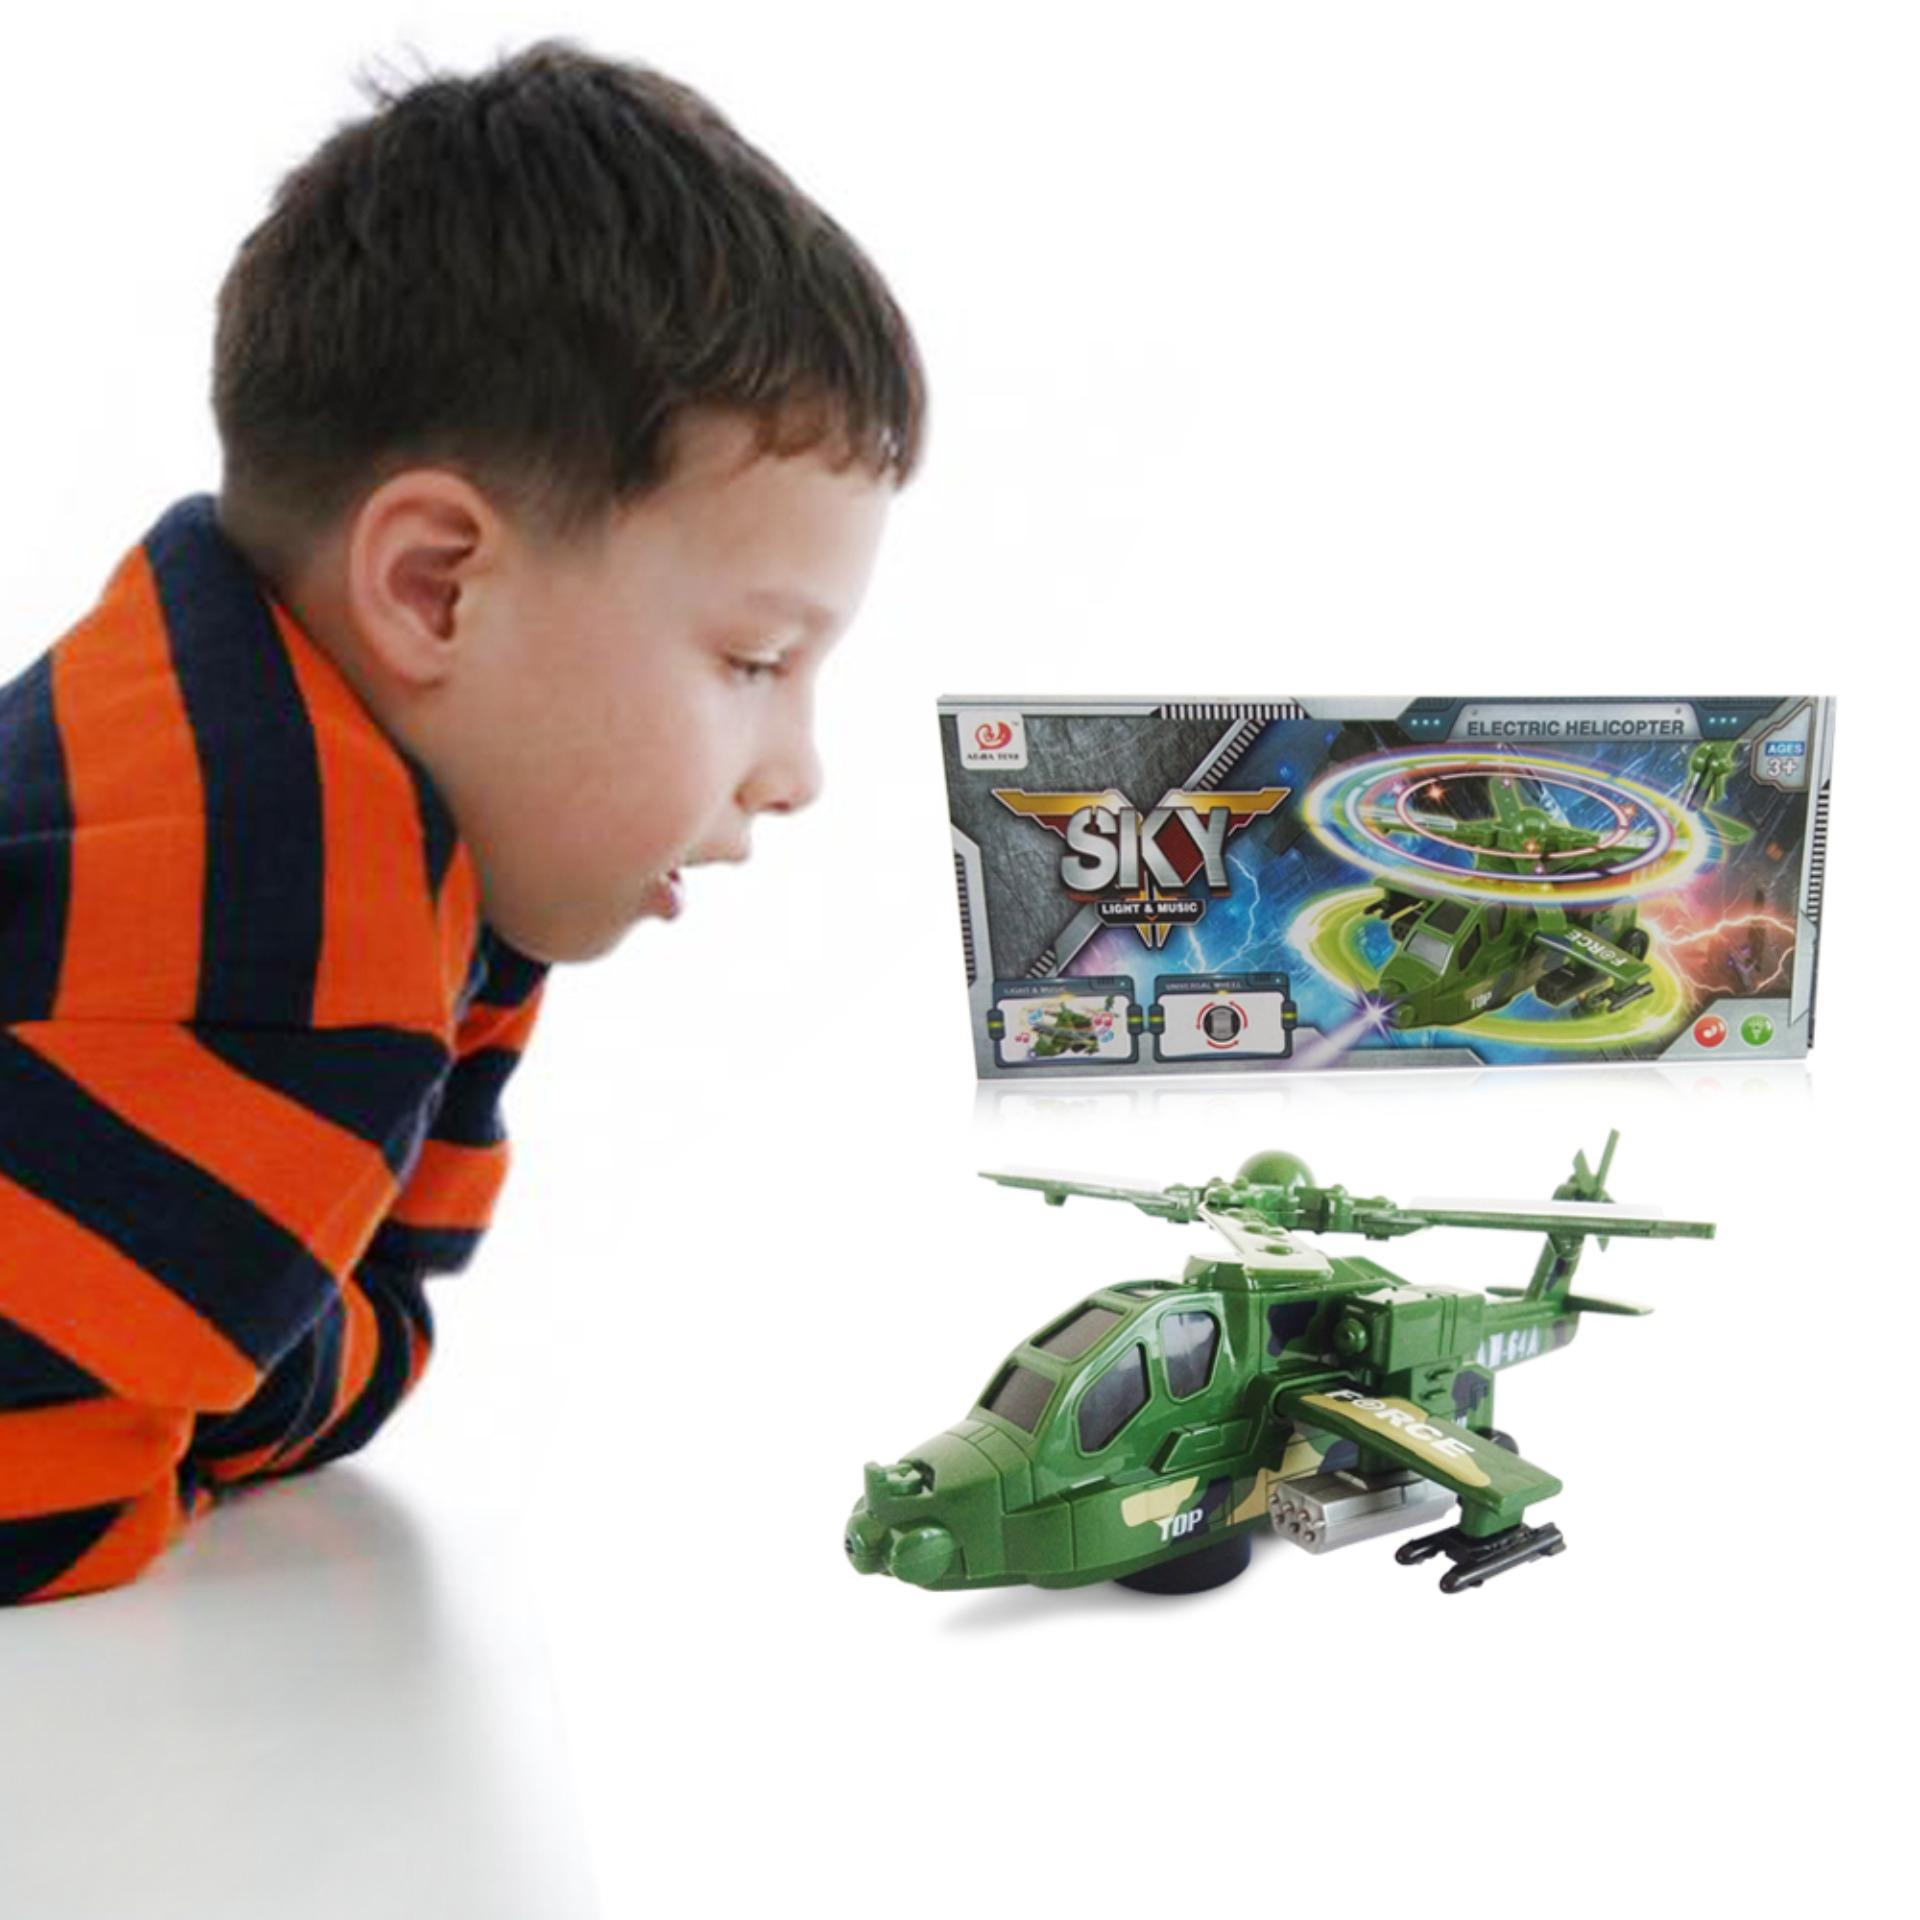 Ocean Toy Terompet Mainan Musik Anak Oct3210 Multicolor Daftar Sky Electric Helicopter 8811 3